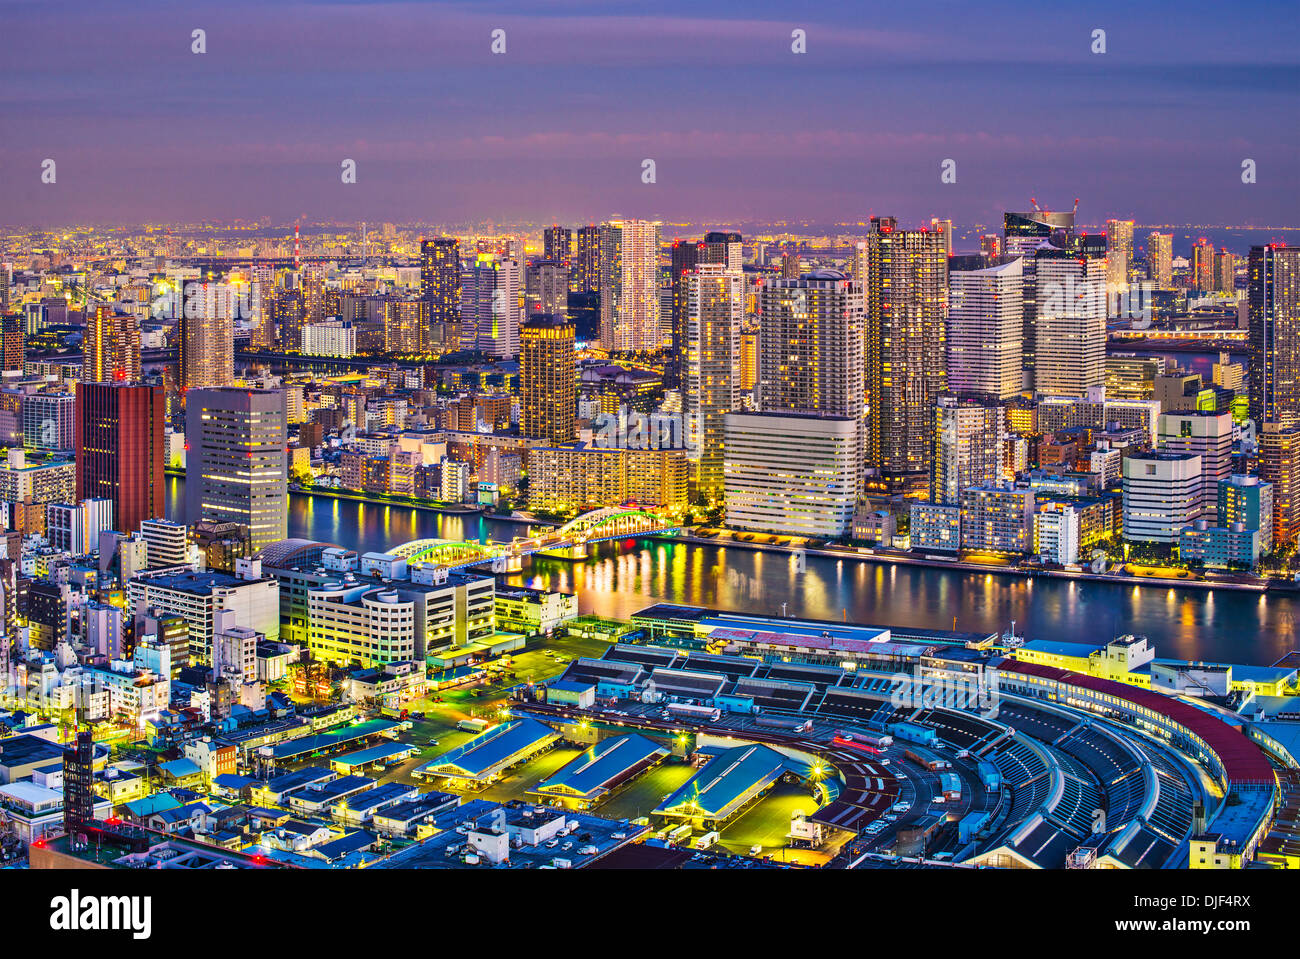 View of Tokyo, Japan over Tsukiji Fish Market. Stock Photo